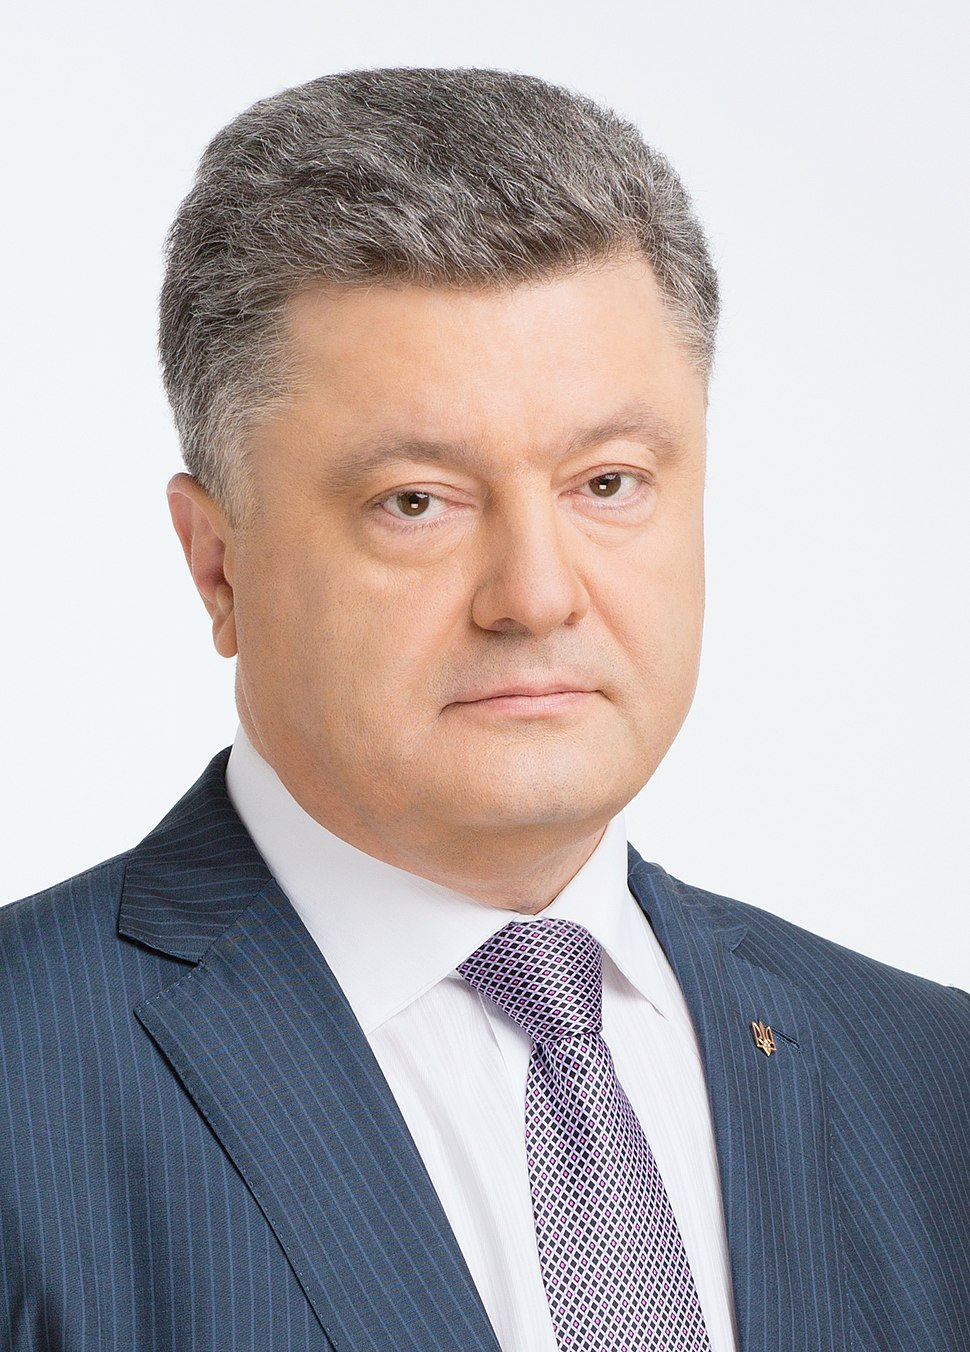 Official portrait of Petro Poroshenko